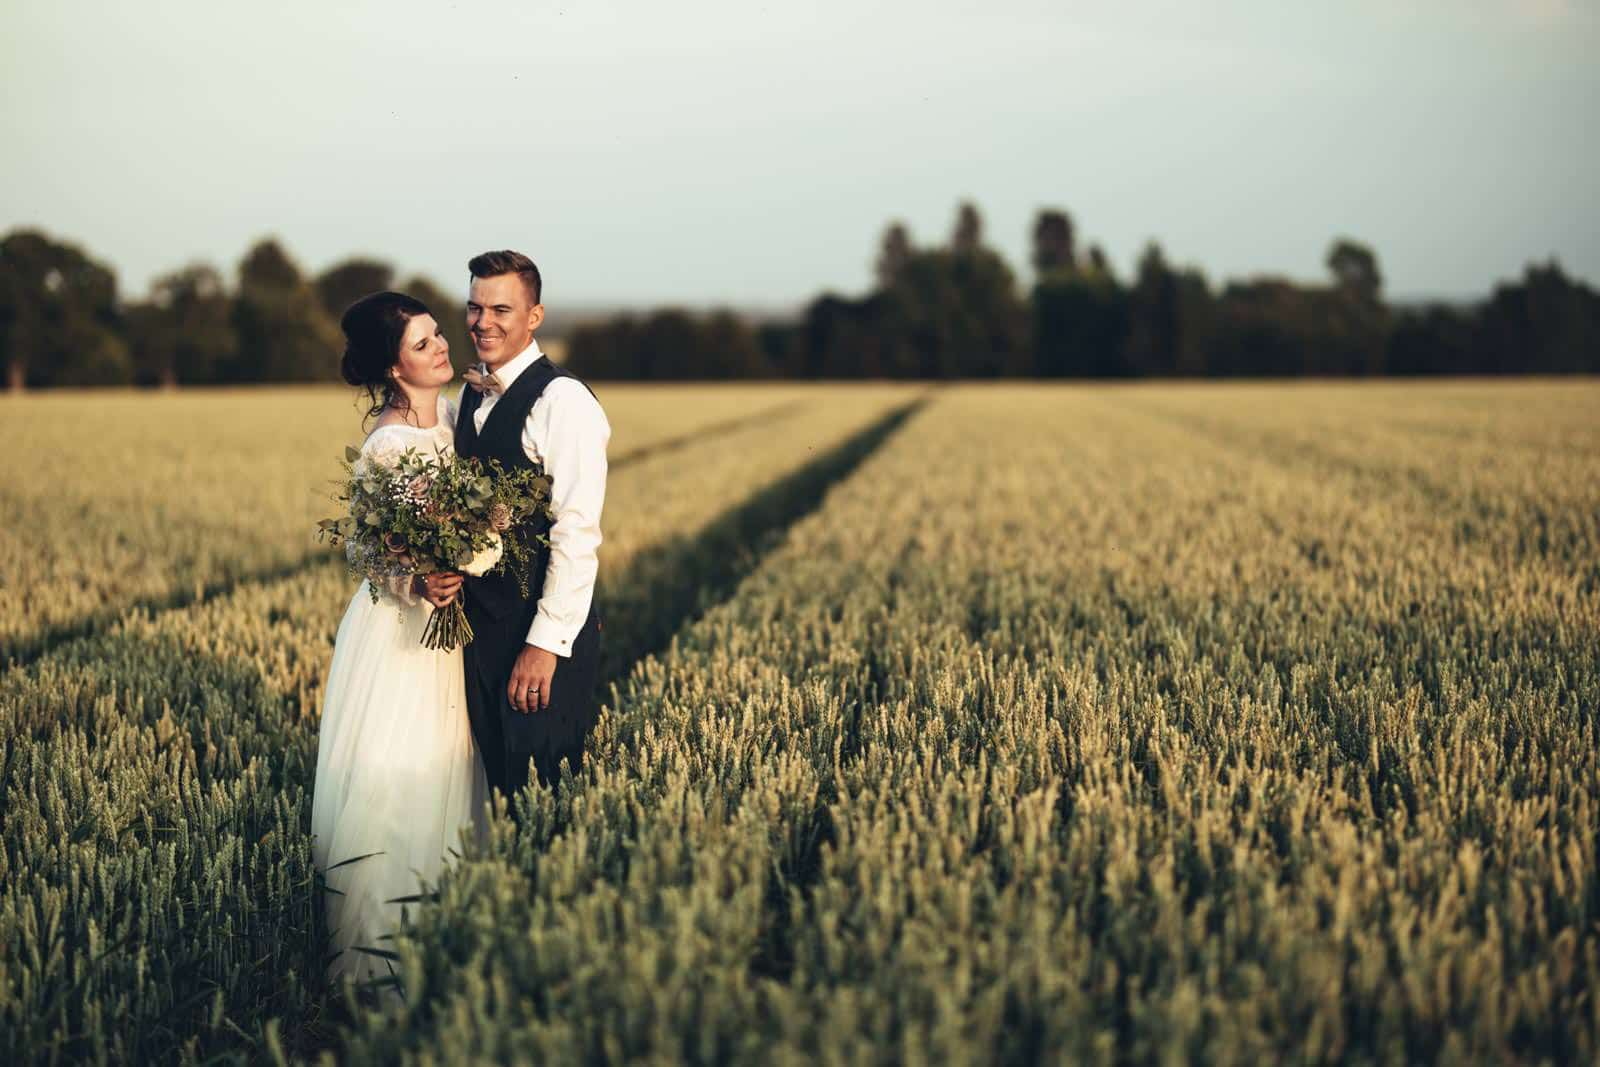 Bride and groom standing in a wheat field golden hour photography